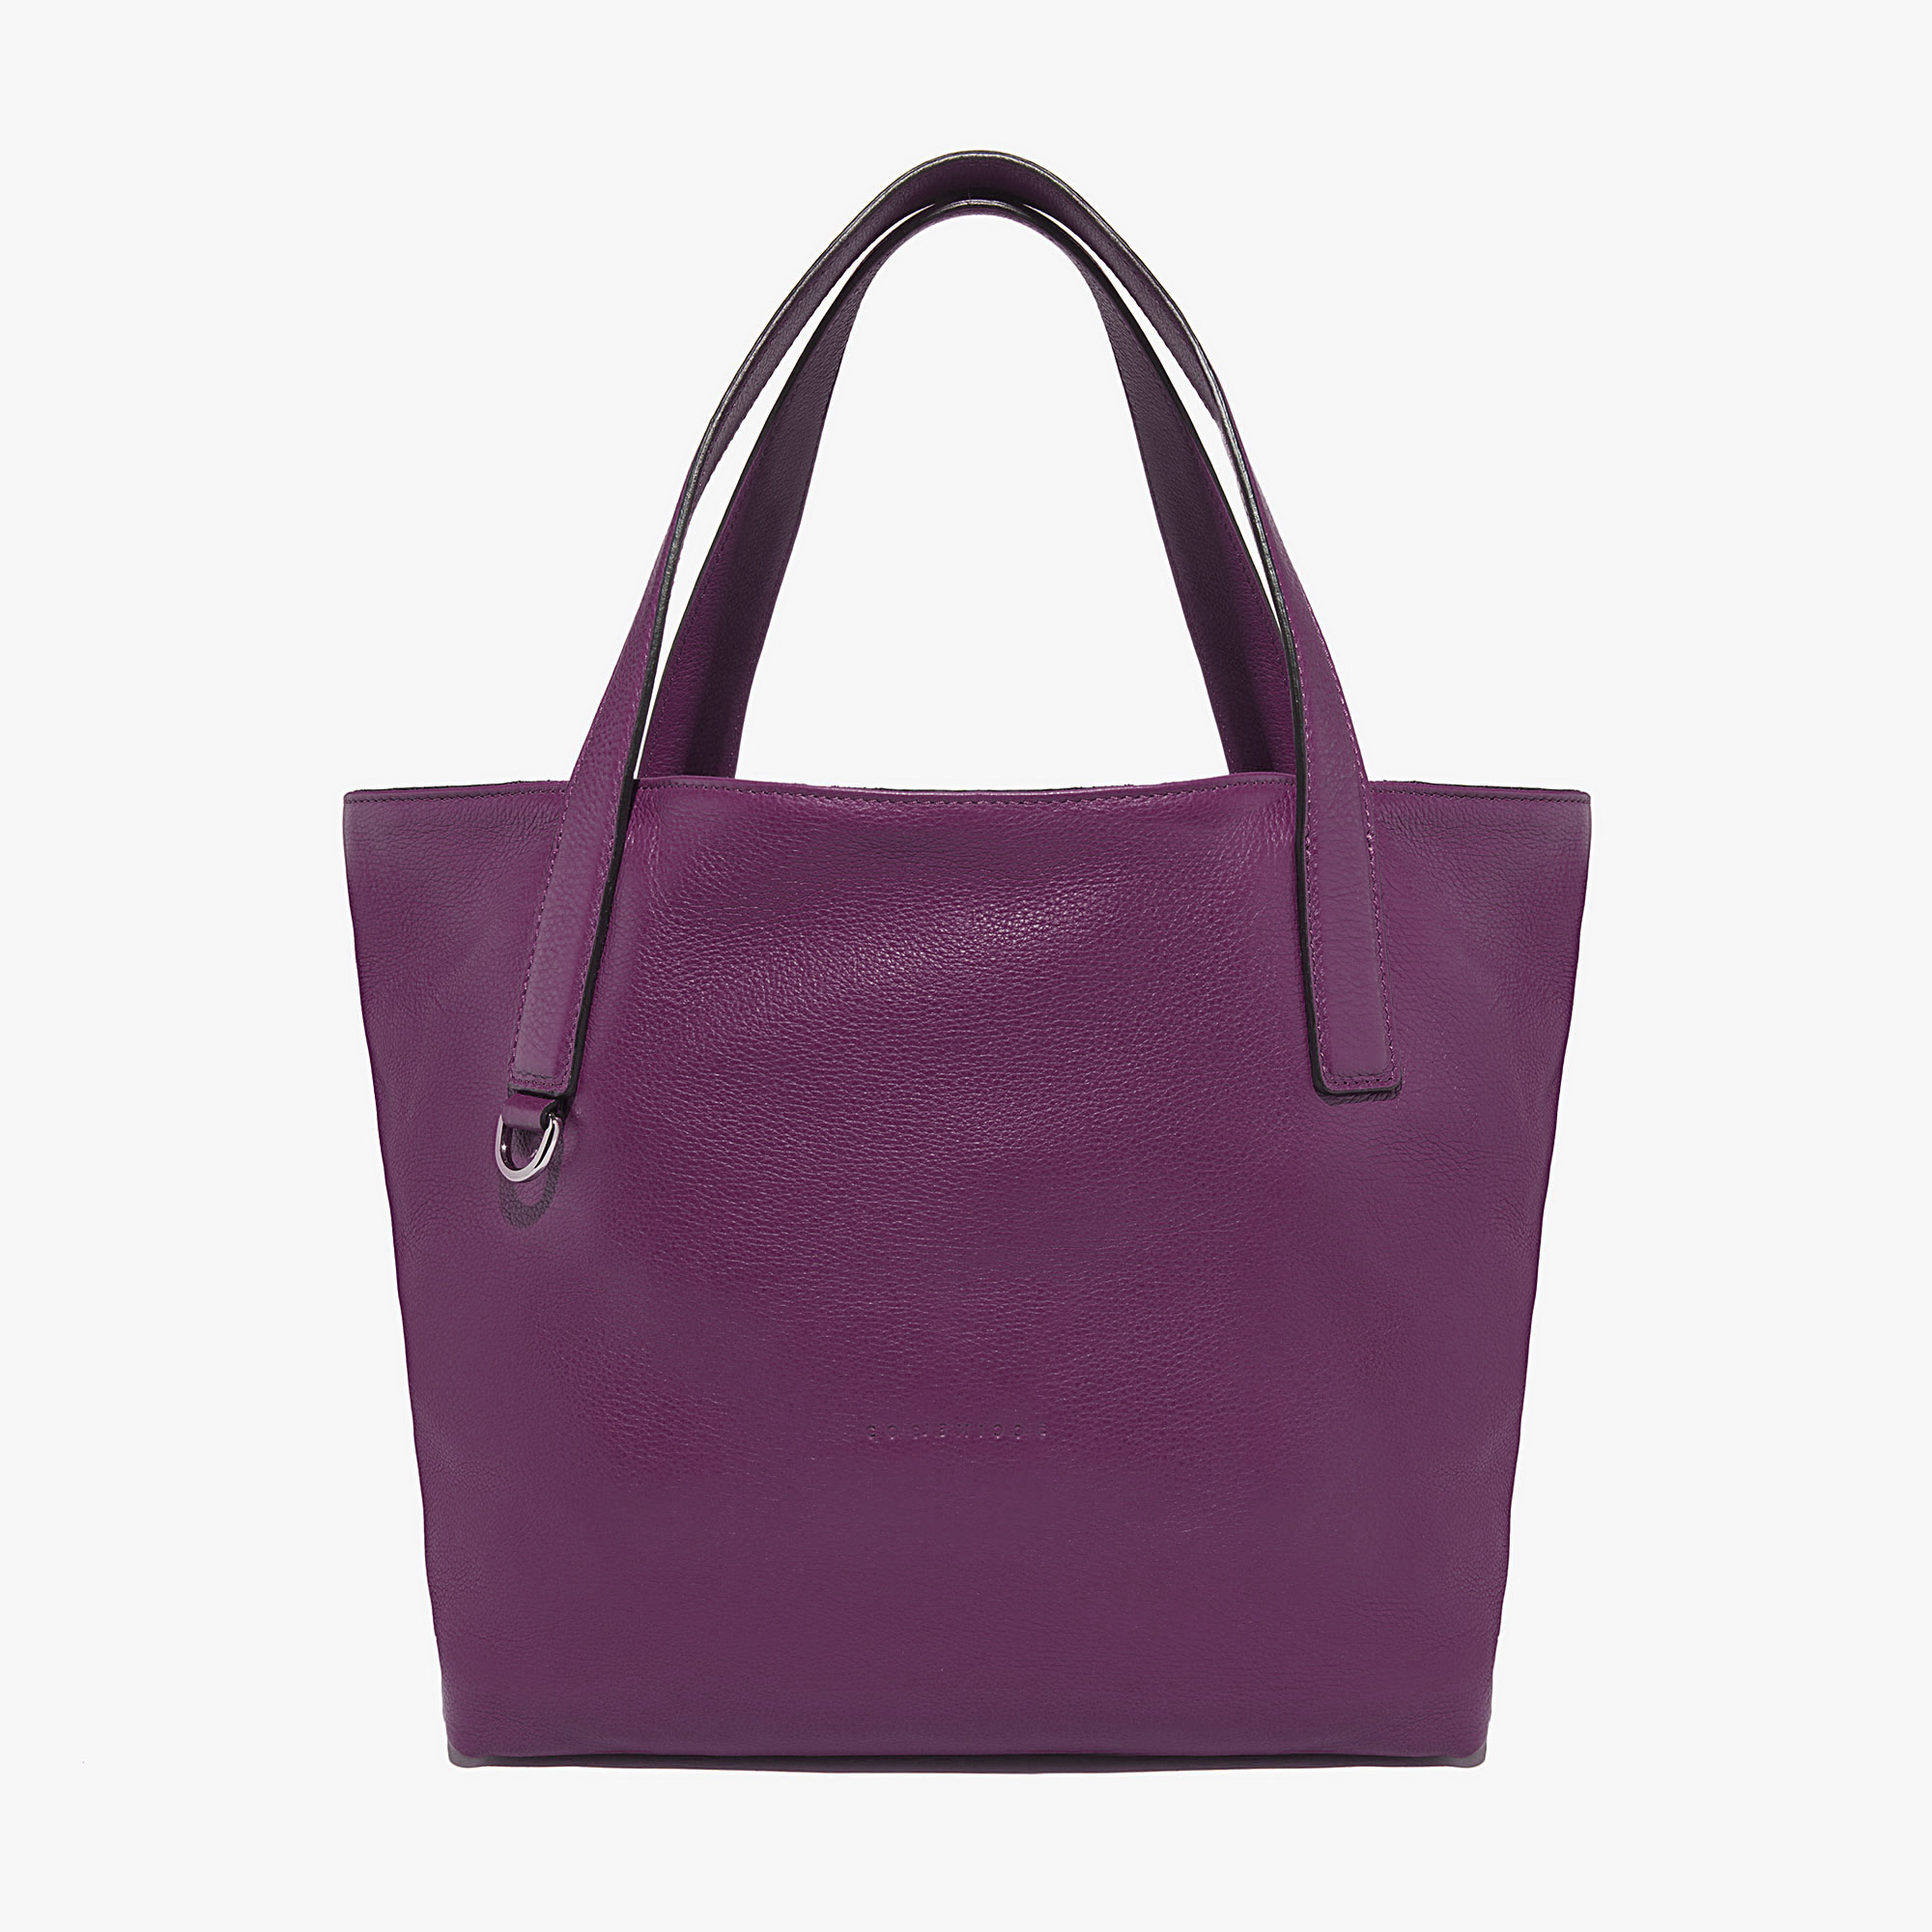 Coccinelle Leather shopping tote